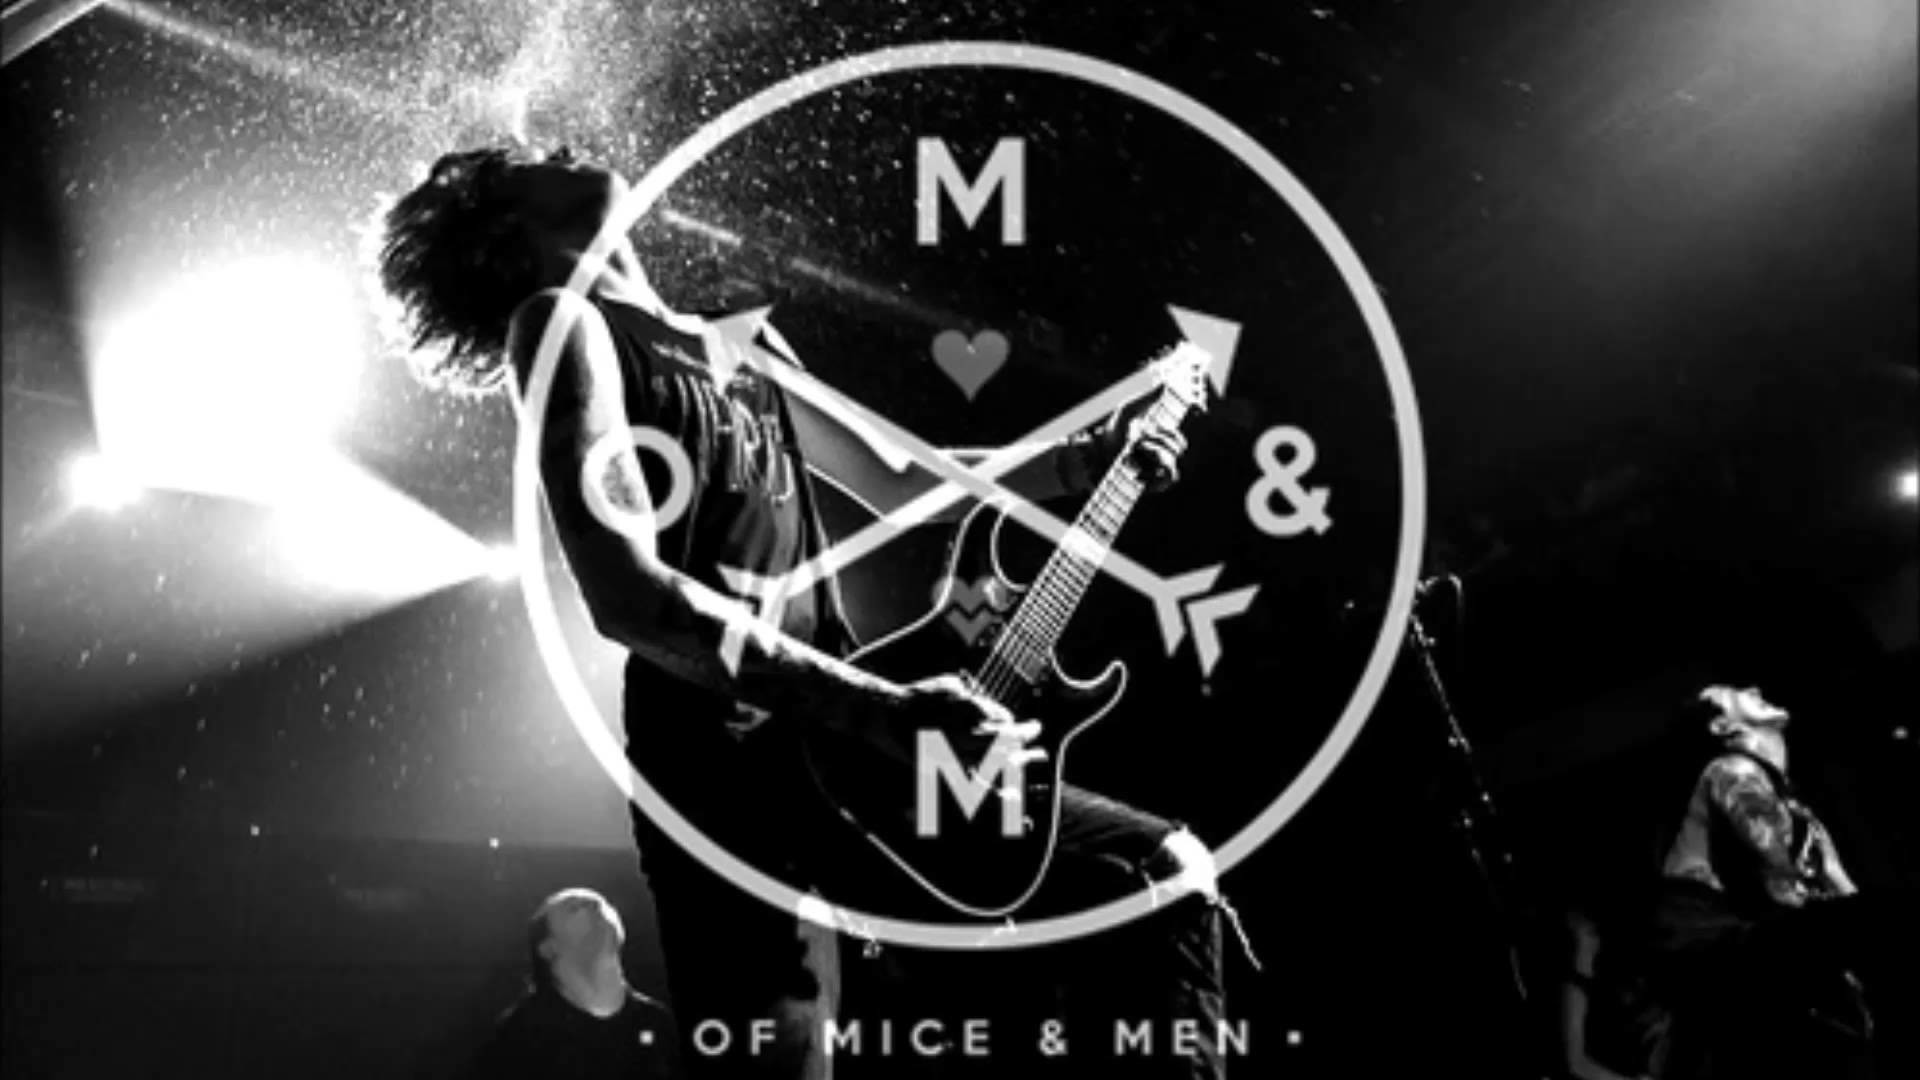 Of mice and men wallpapers 75 images - Austin carlile wallpaper ...